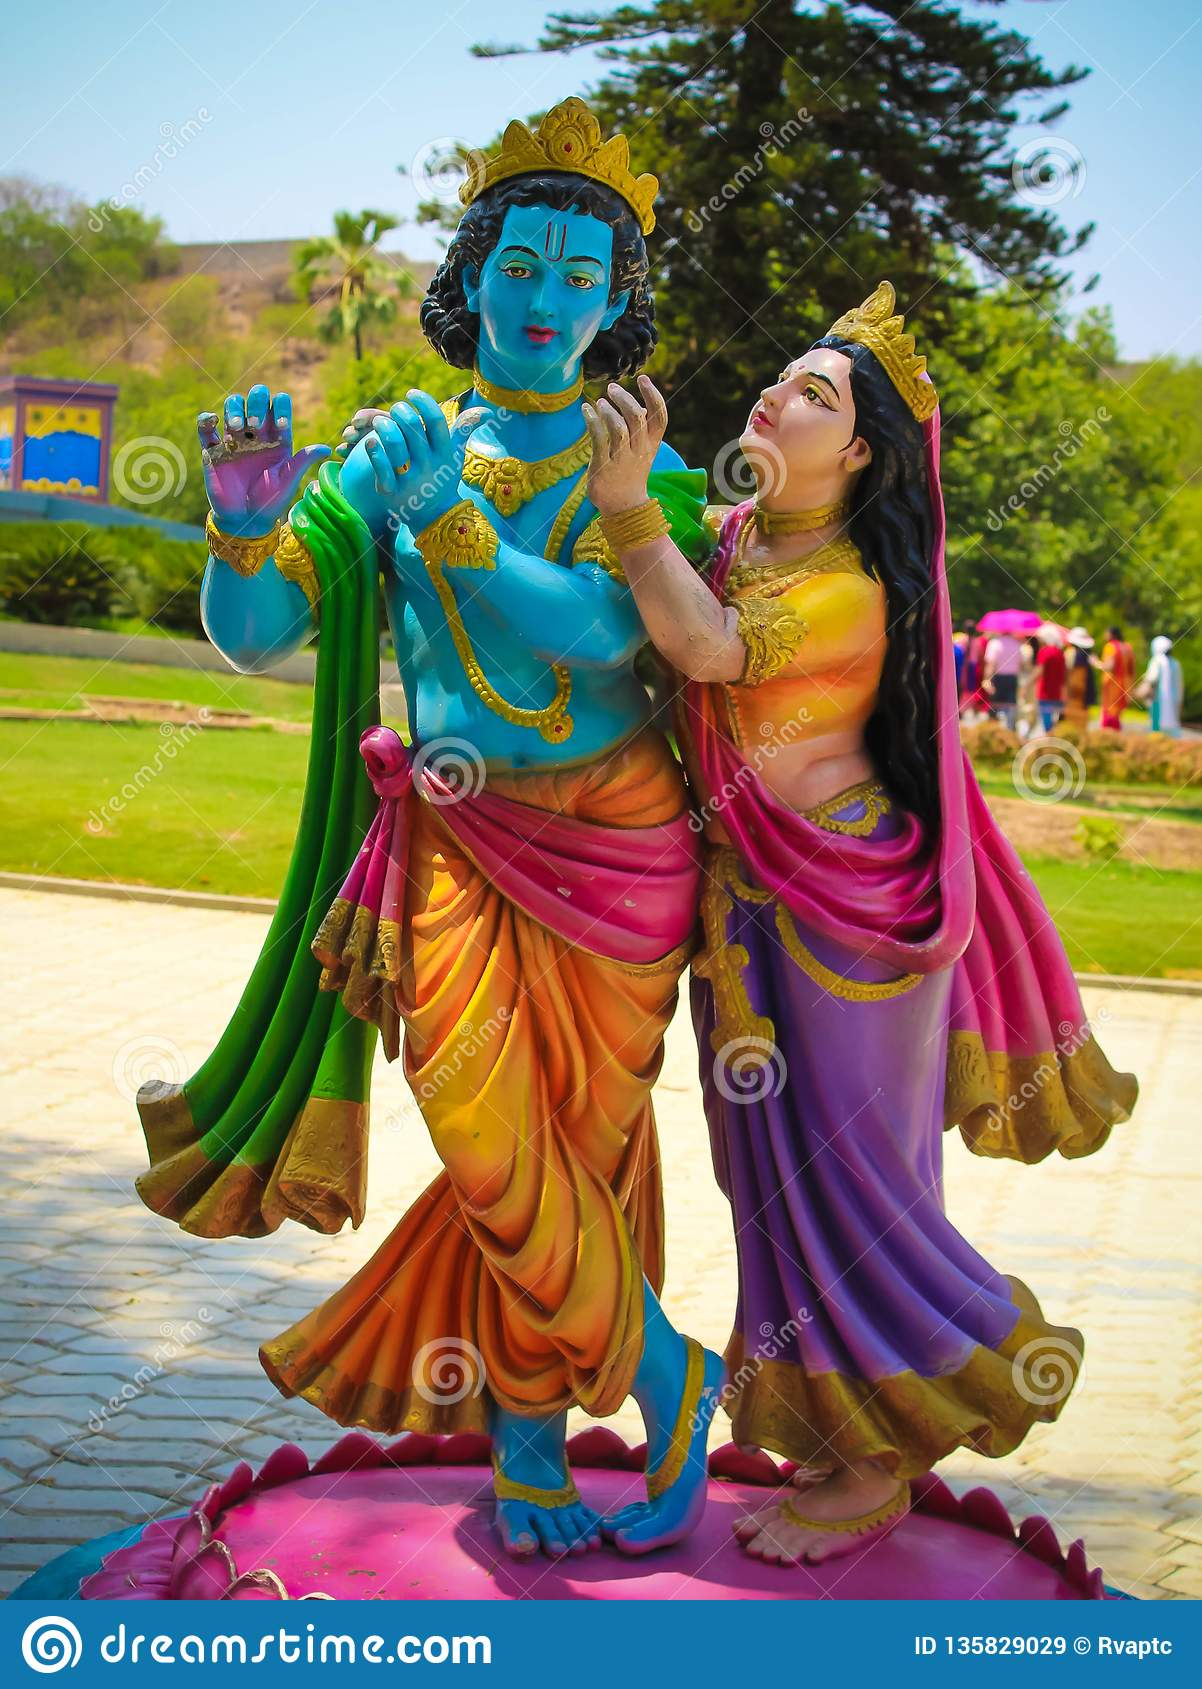 Lord Krishna And Radha Colorful Statue Stock Image - Image of india